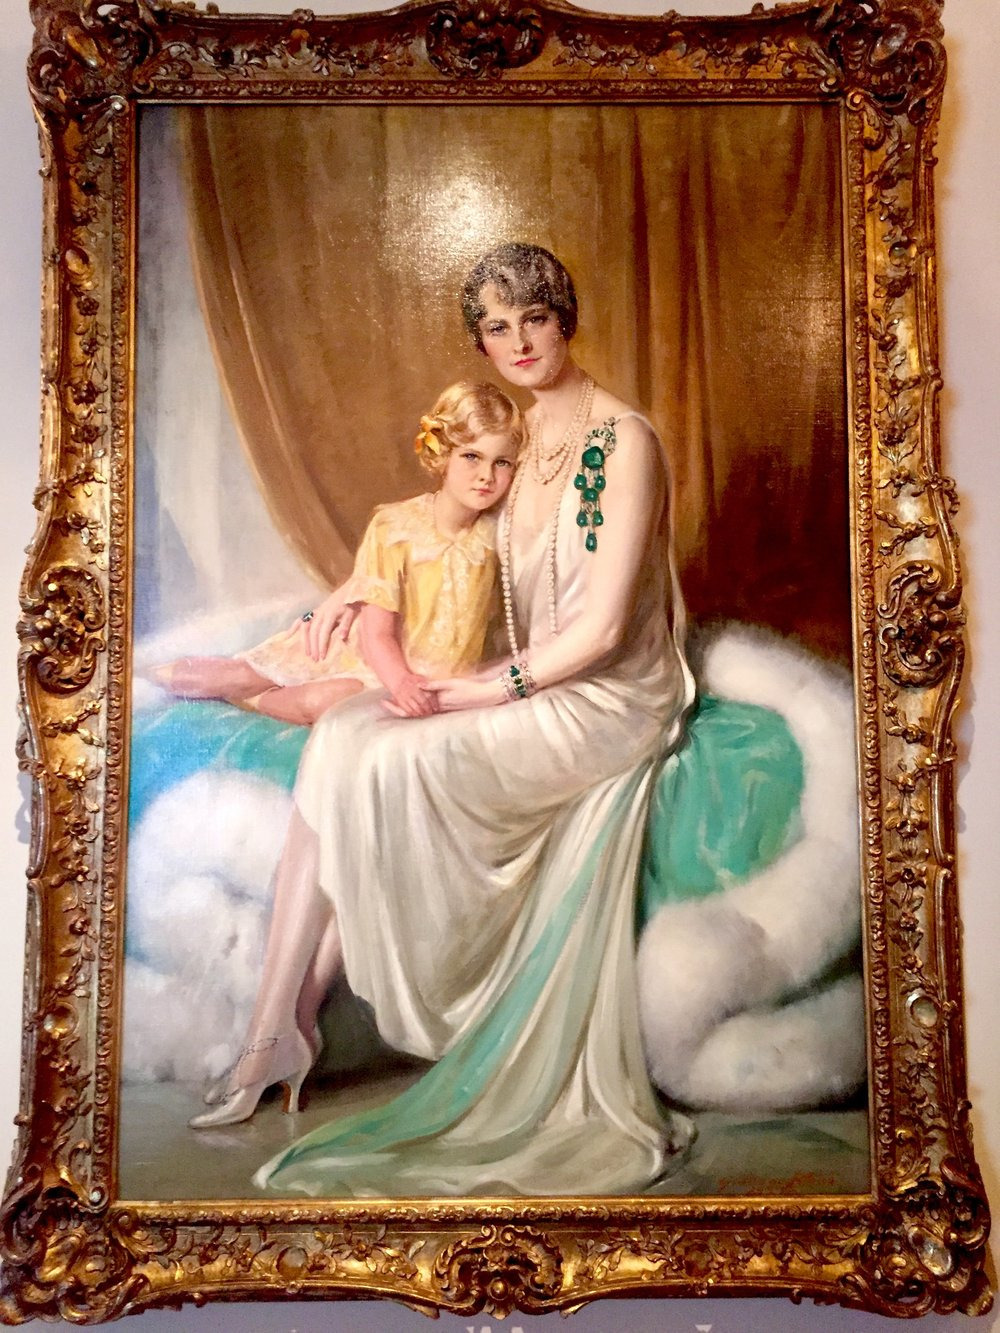 Post and daughter, Nedenia. Nedenia will grow up to become actress Dina Merrill. The emerald brooch by Cartier will be part of the Spectacular exhibit.